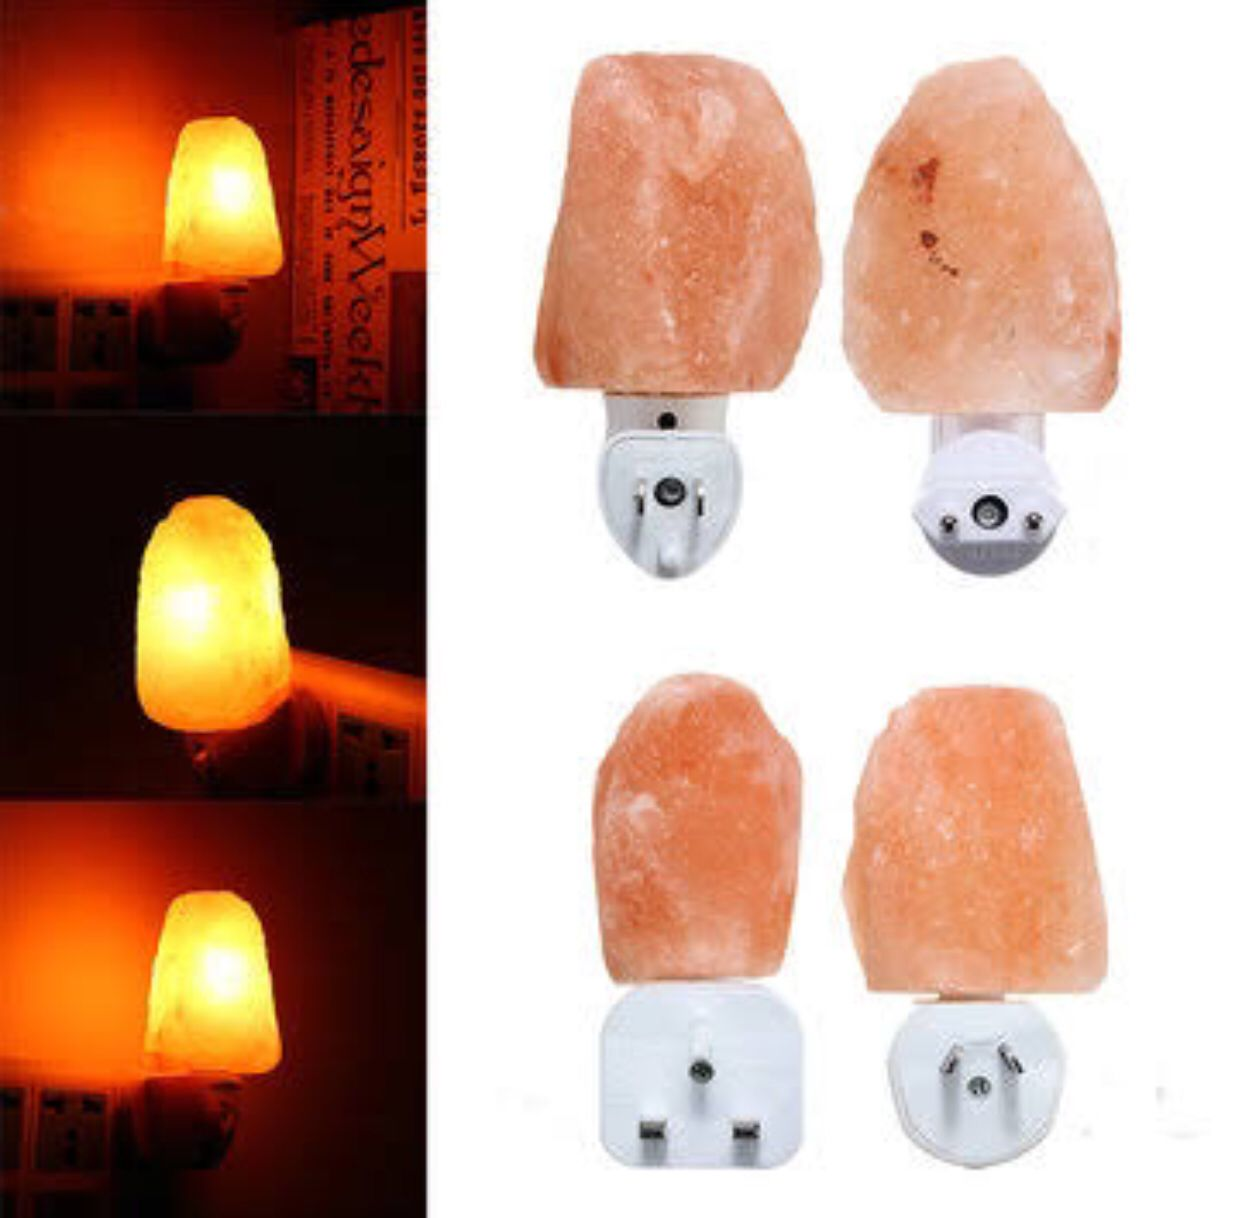 We Are Manufacturers And Exporters Of Himalayan Salt Products Especially Himalayan Salt Night Lamp For Further Details You M Lamp Night Light Natural Crystals